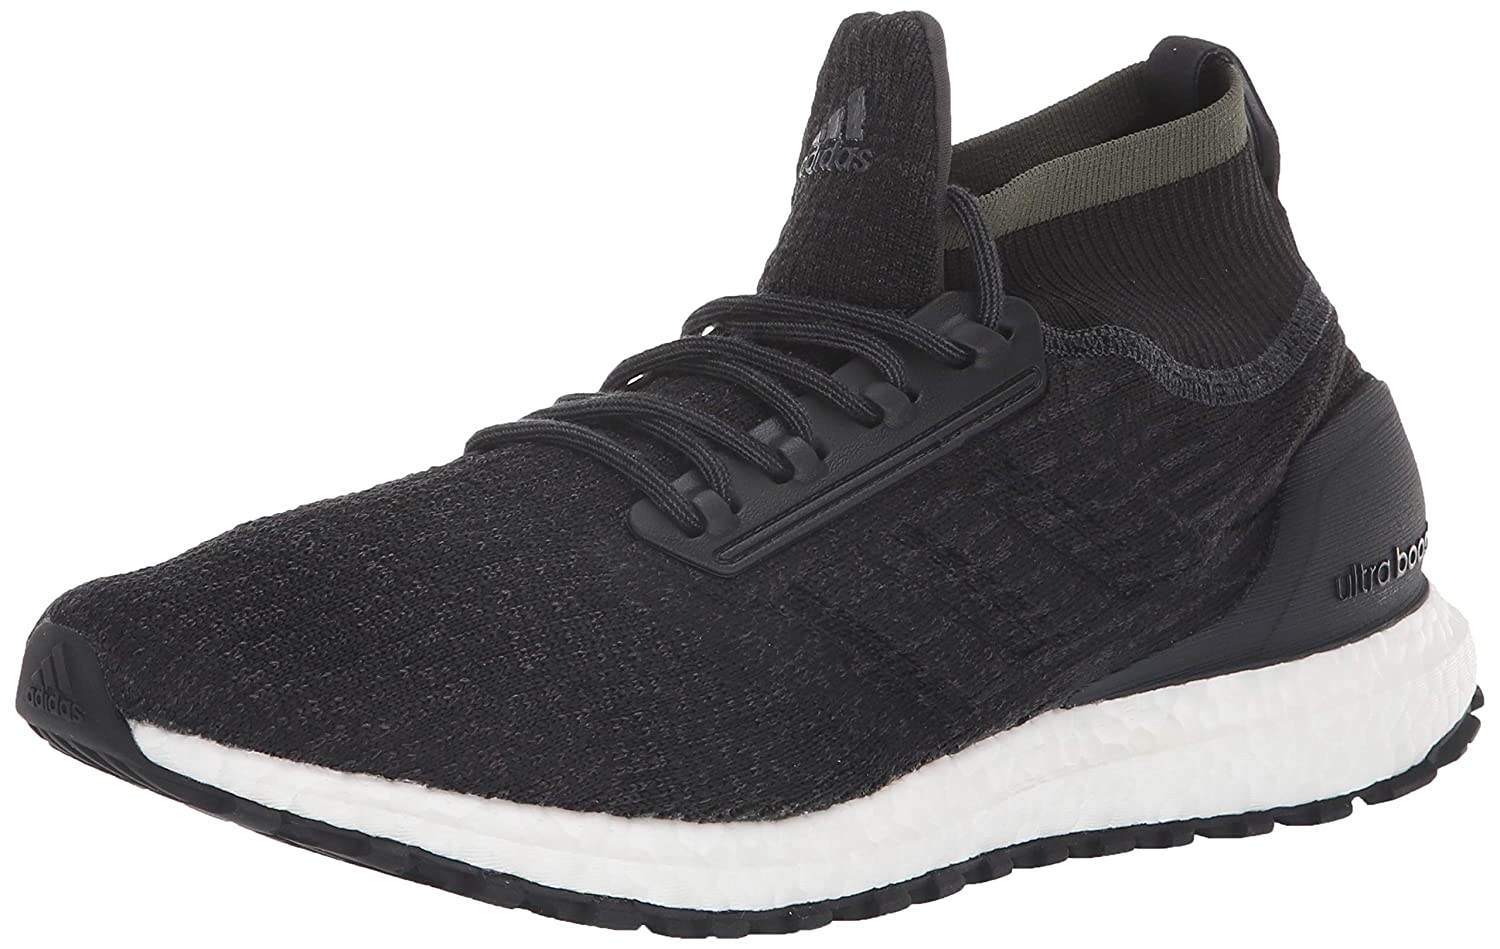 Carbon Black White Adidas Men's Ultraboost All